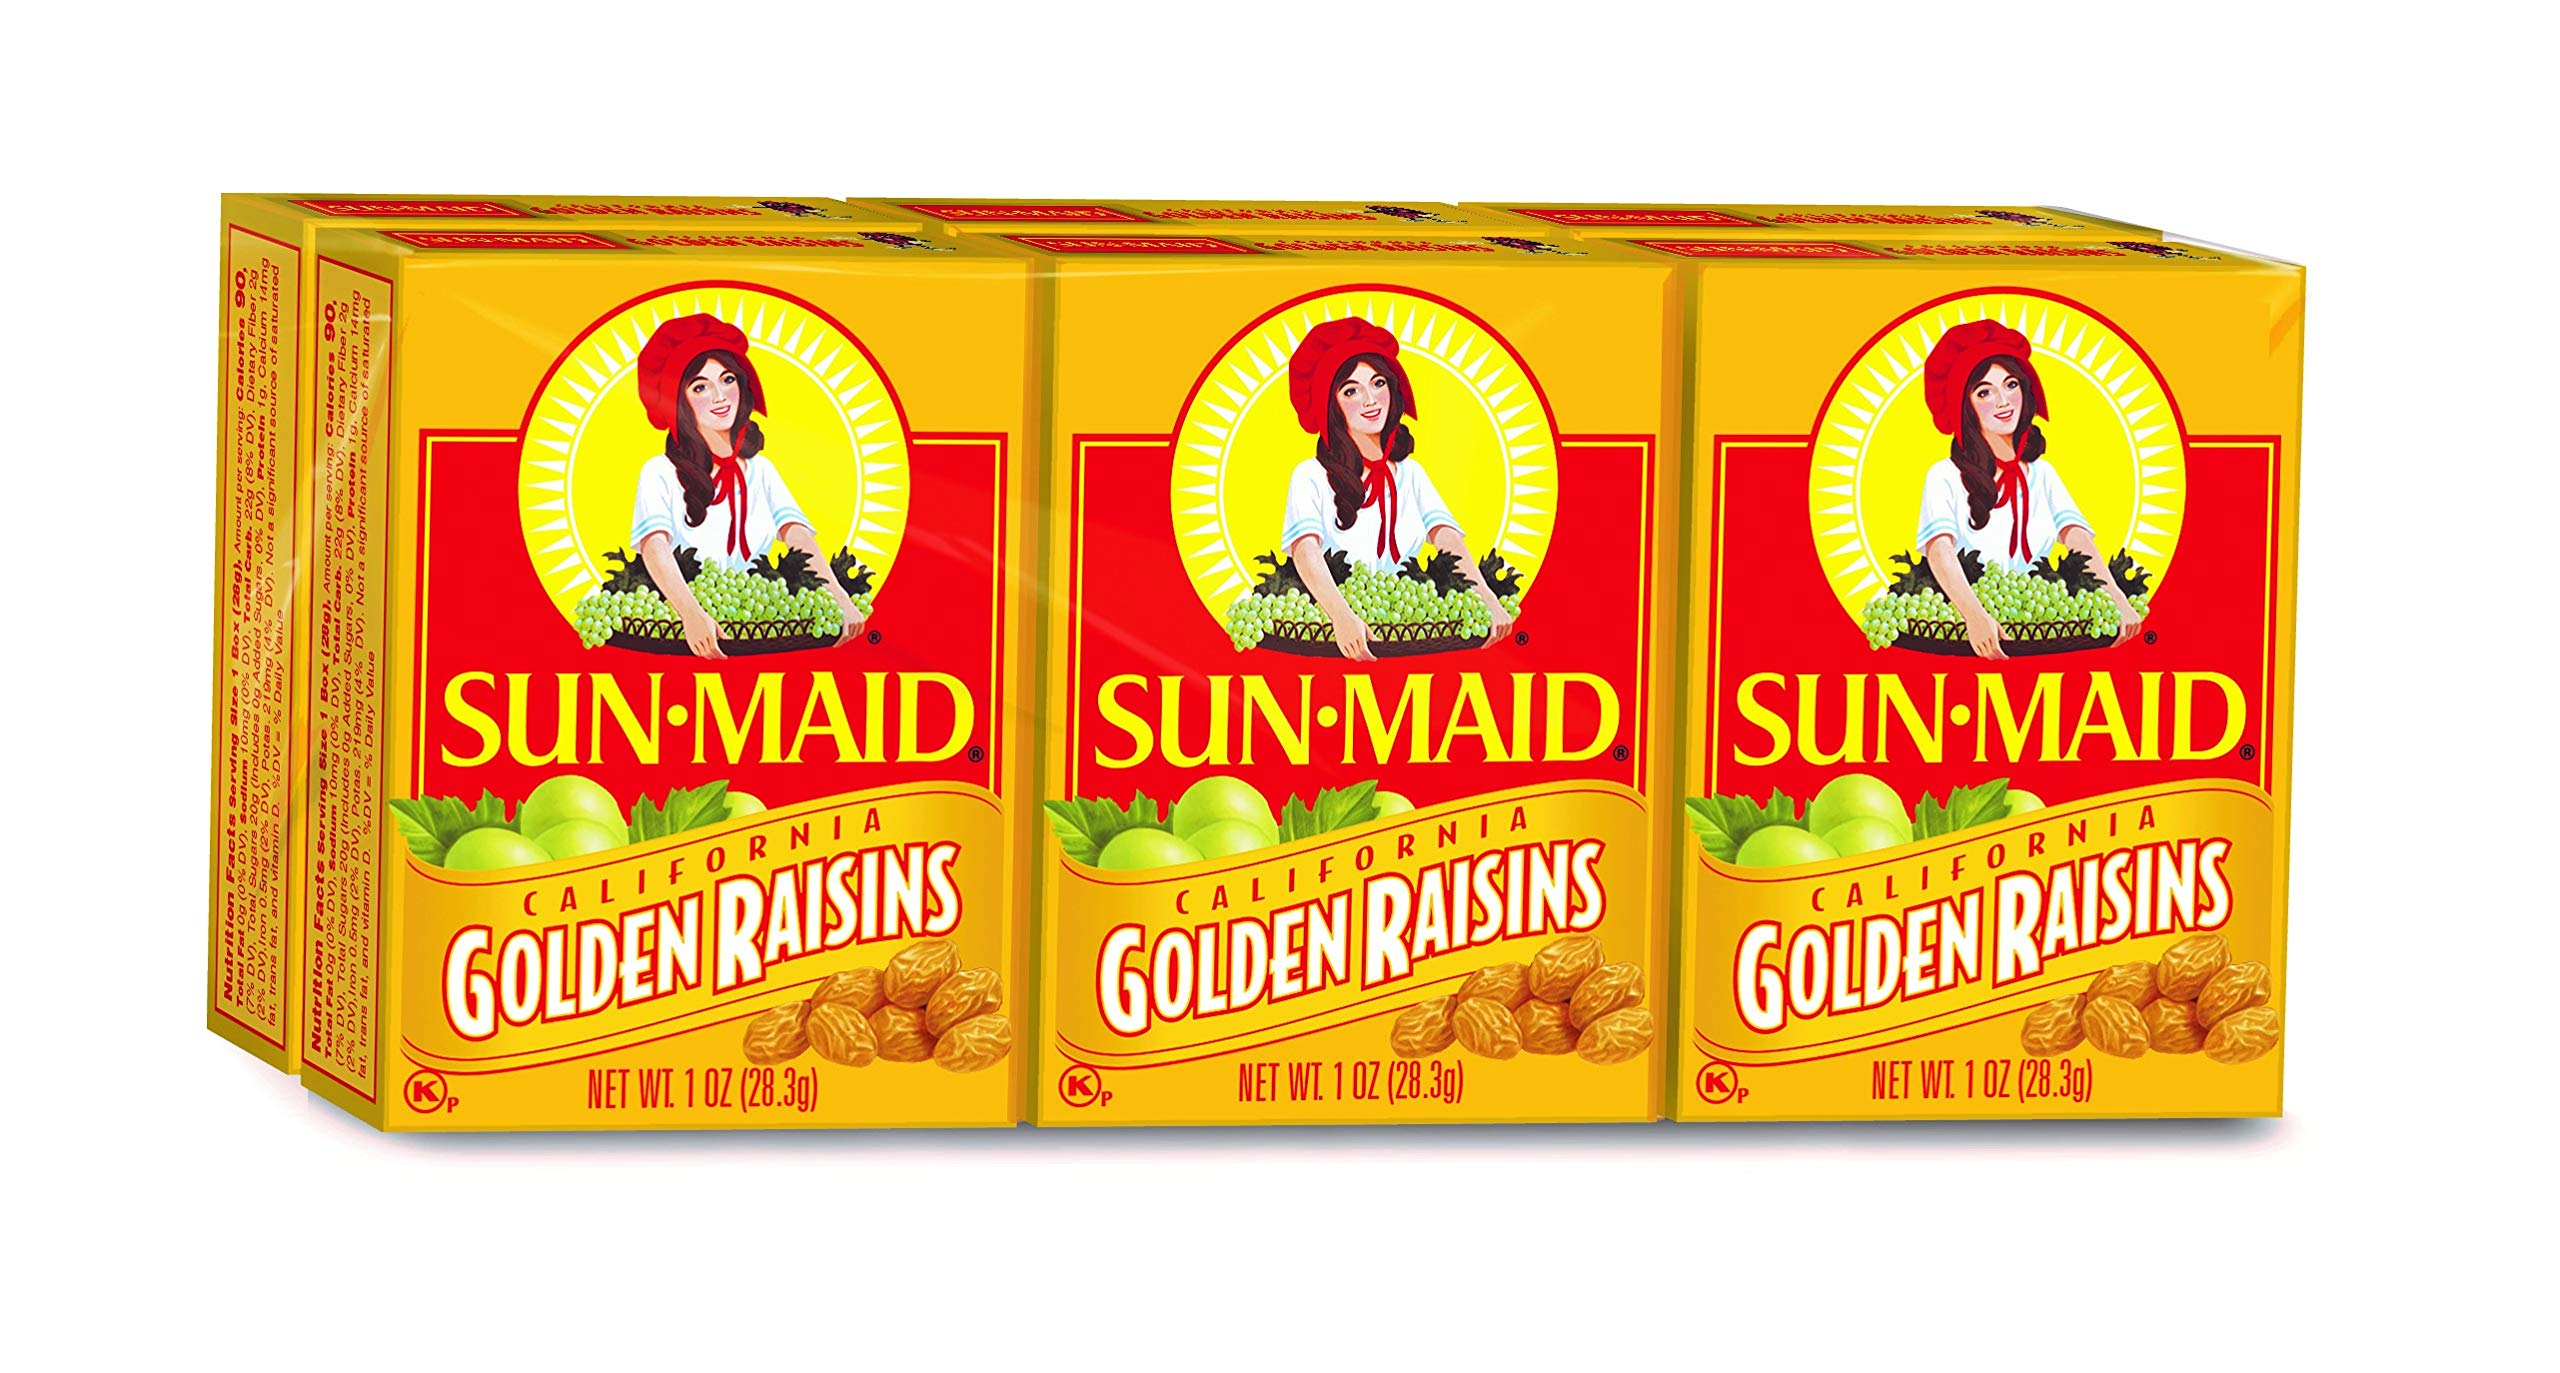 Sun Maid California Golden Raisins (1-Ounce), 6-Count Boxes (Pack of 12) by Sun Maid